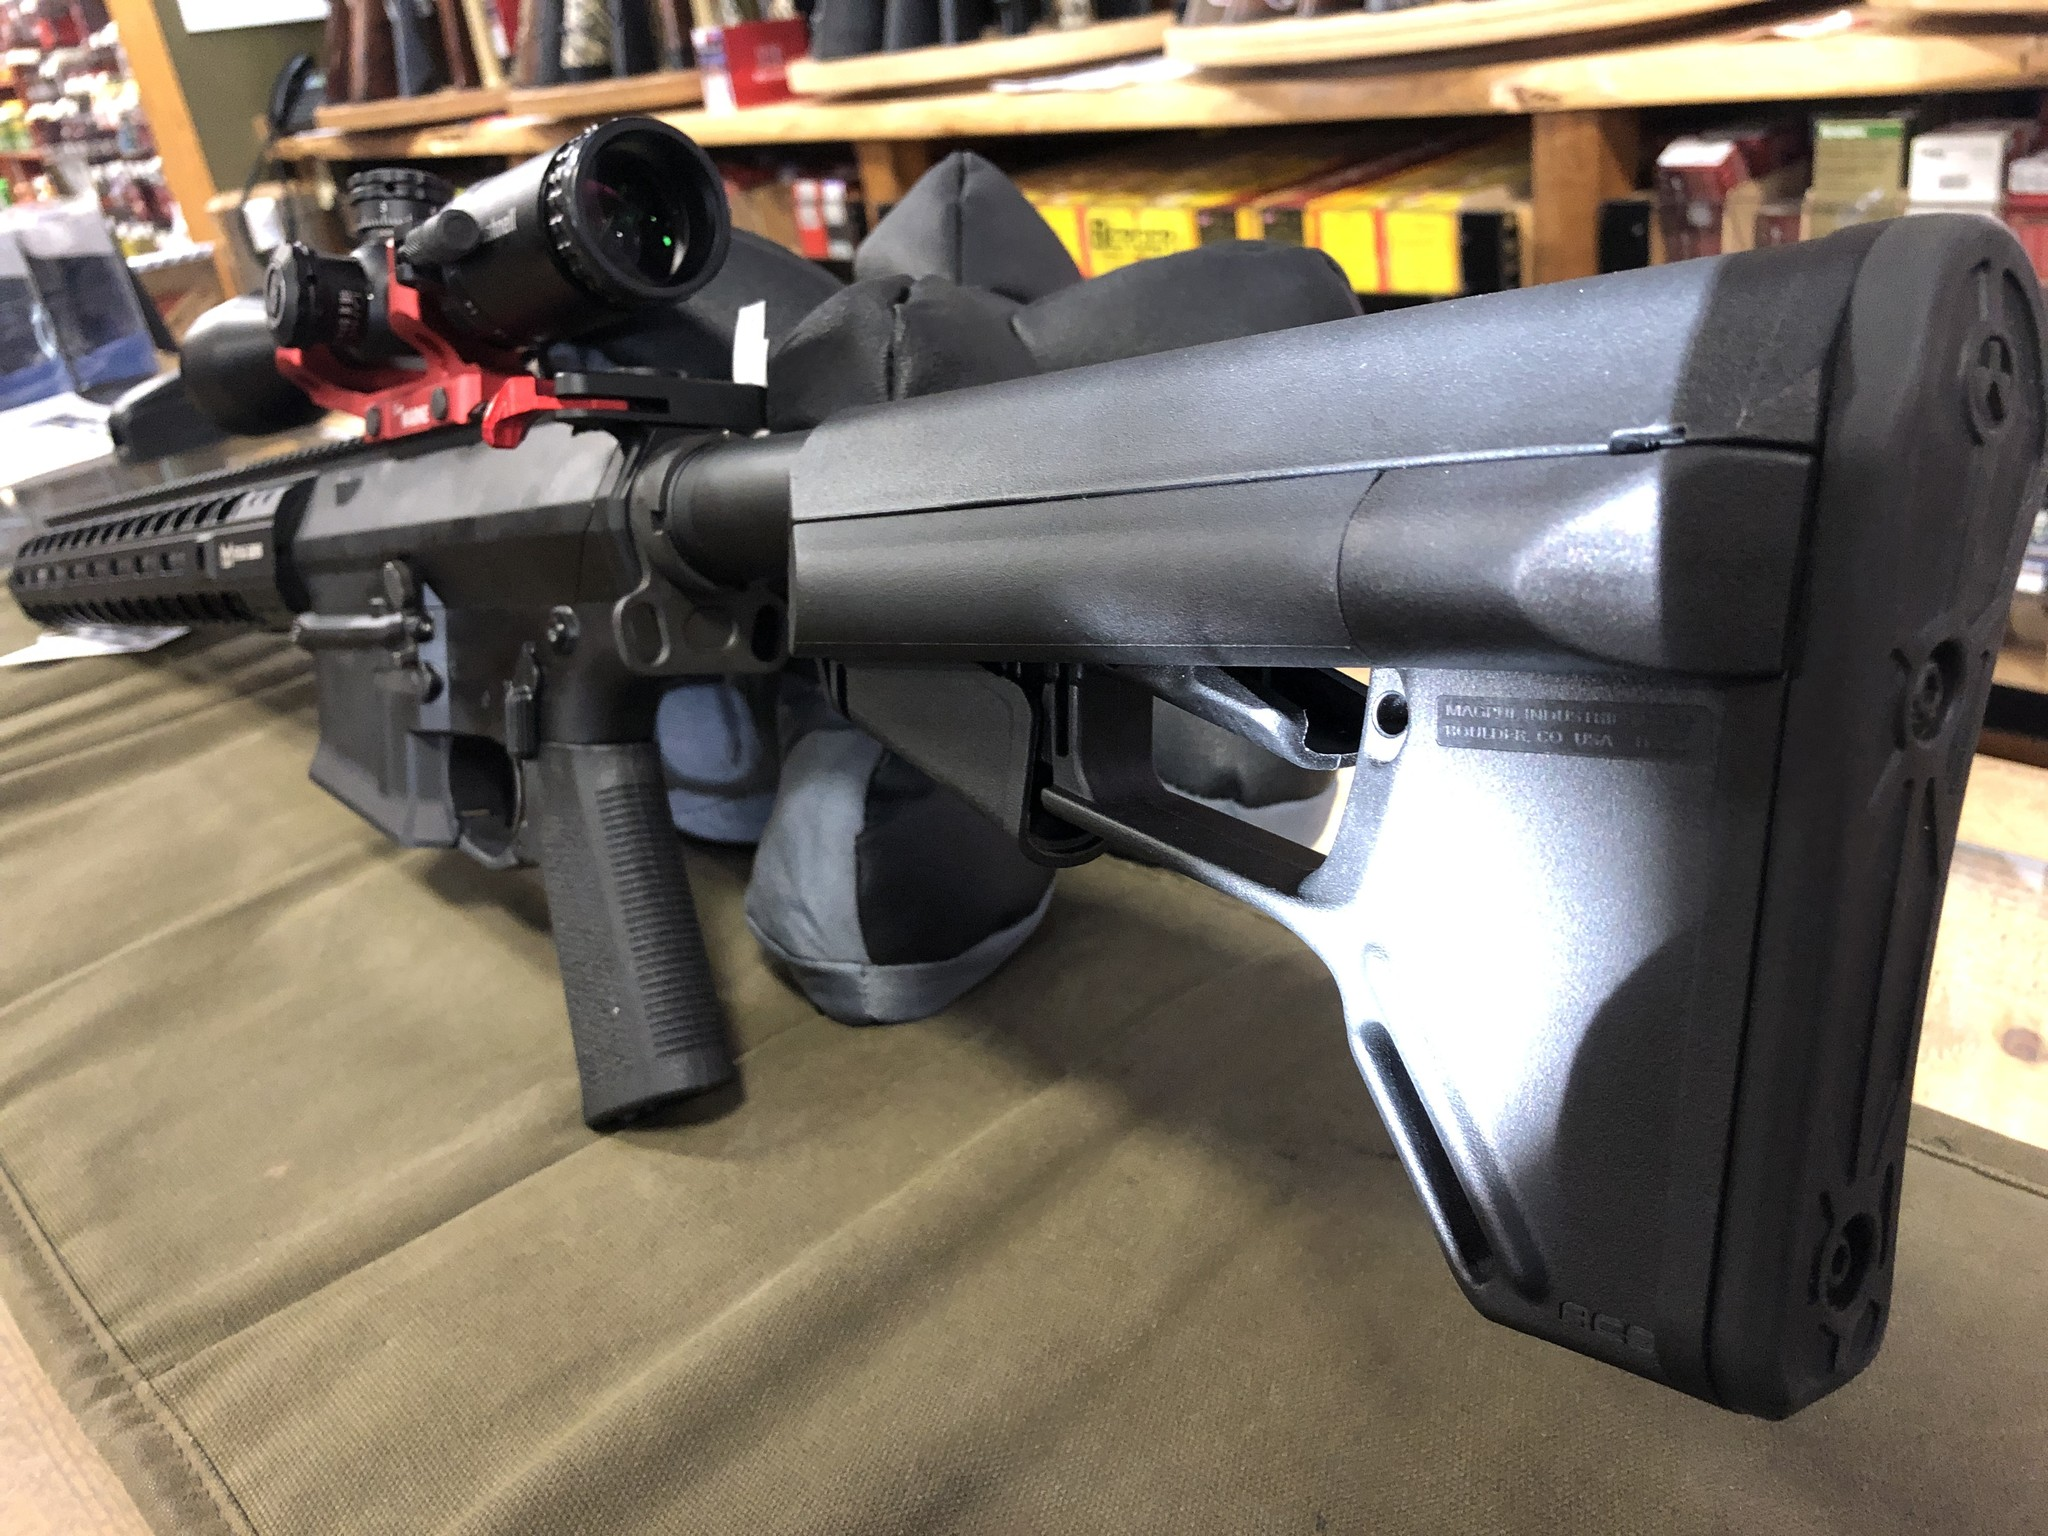 Stag Arms Stag Arms 10 308 Win w/ Scope G#3073